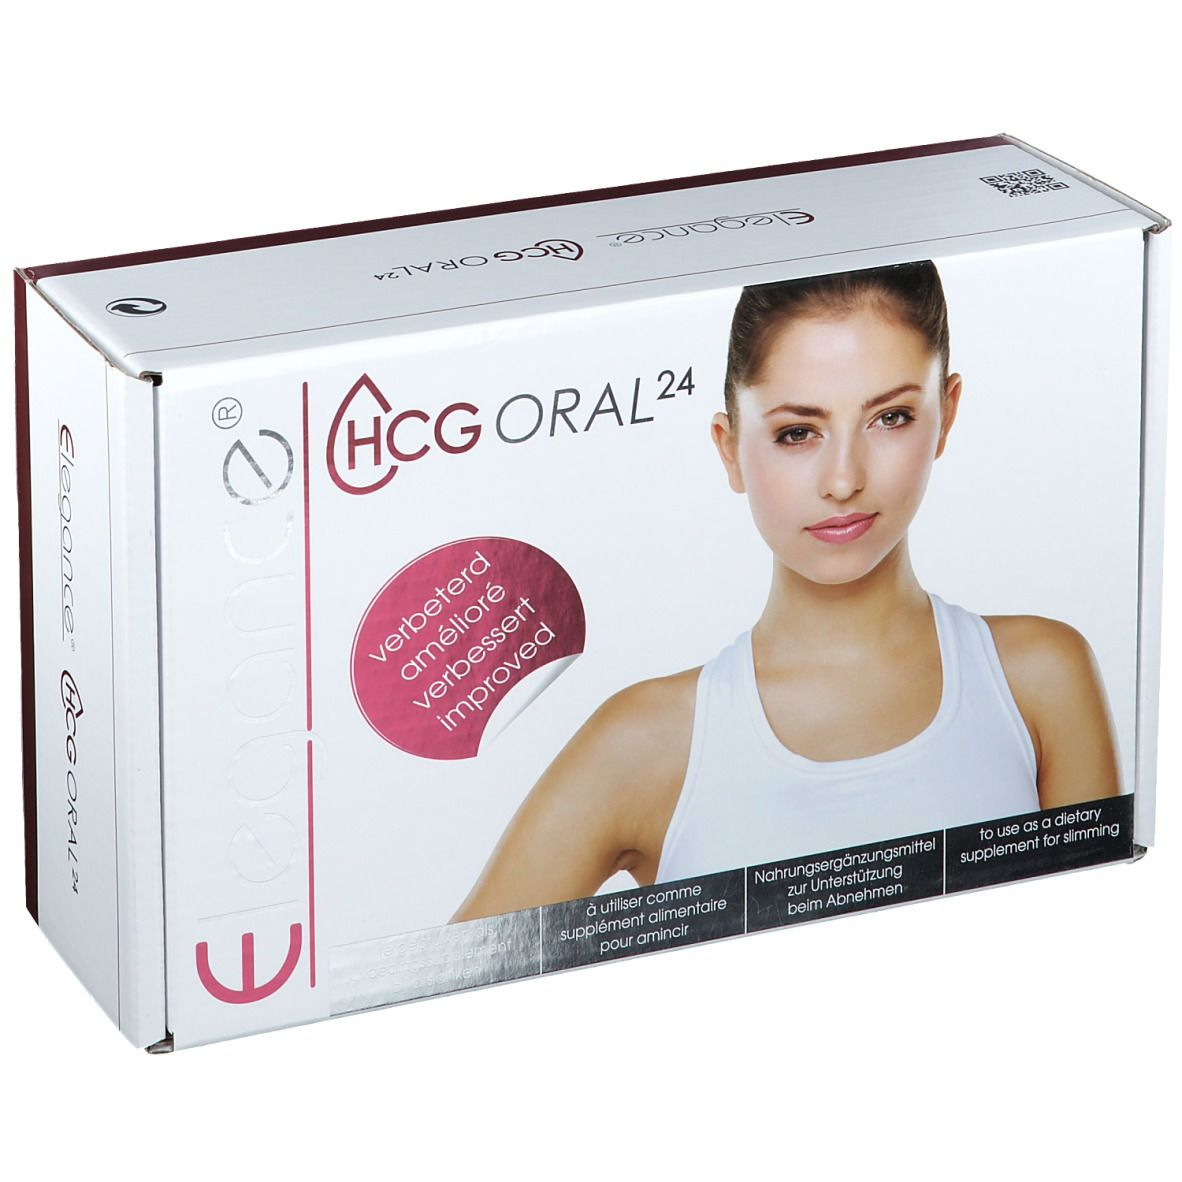 Image of Elegance® HCG Oral 24